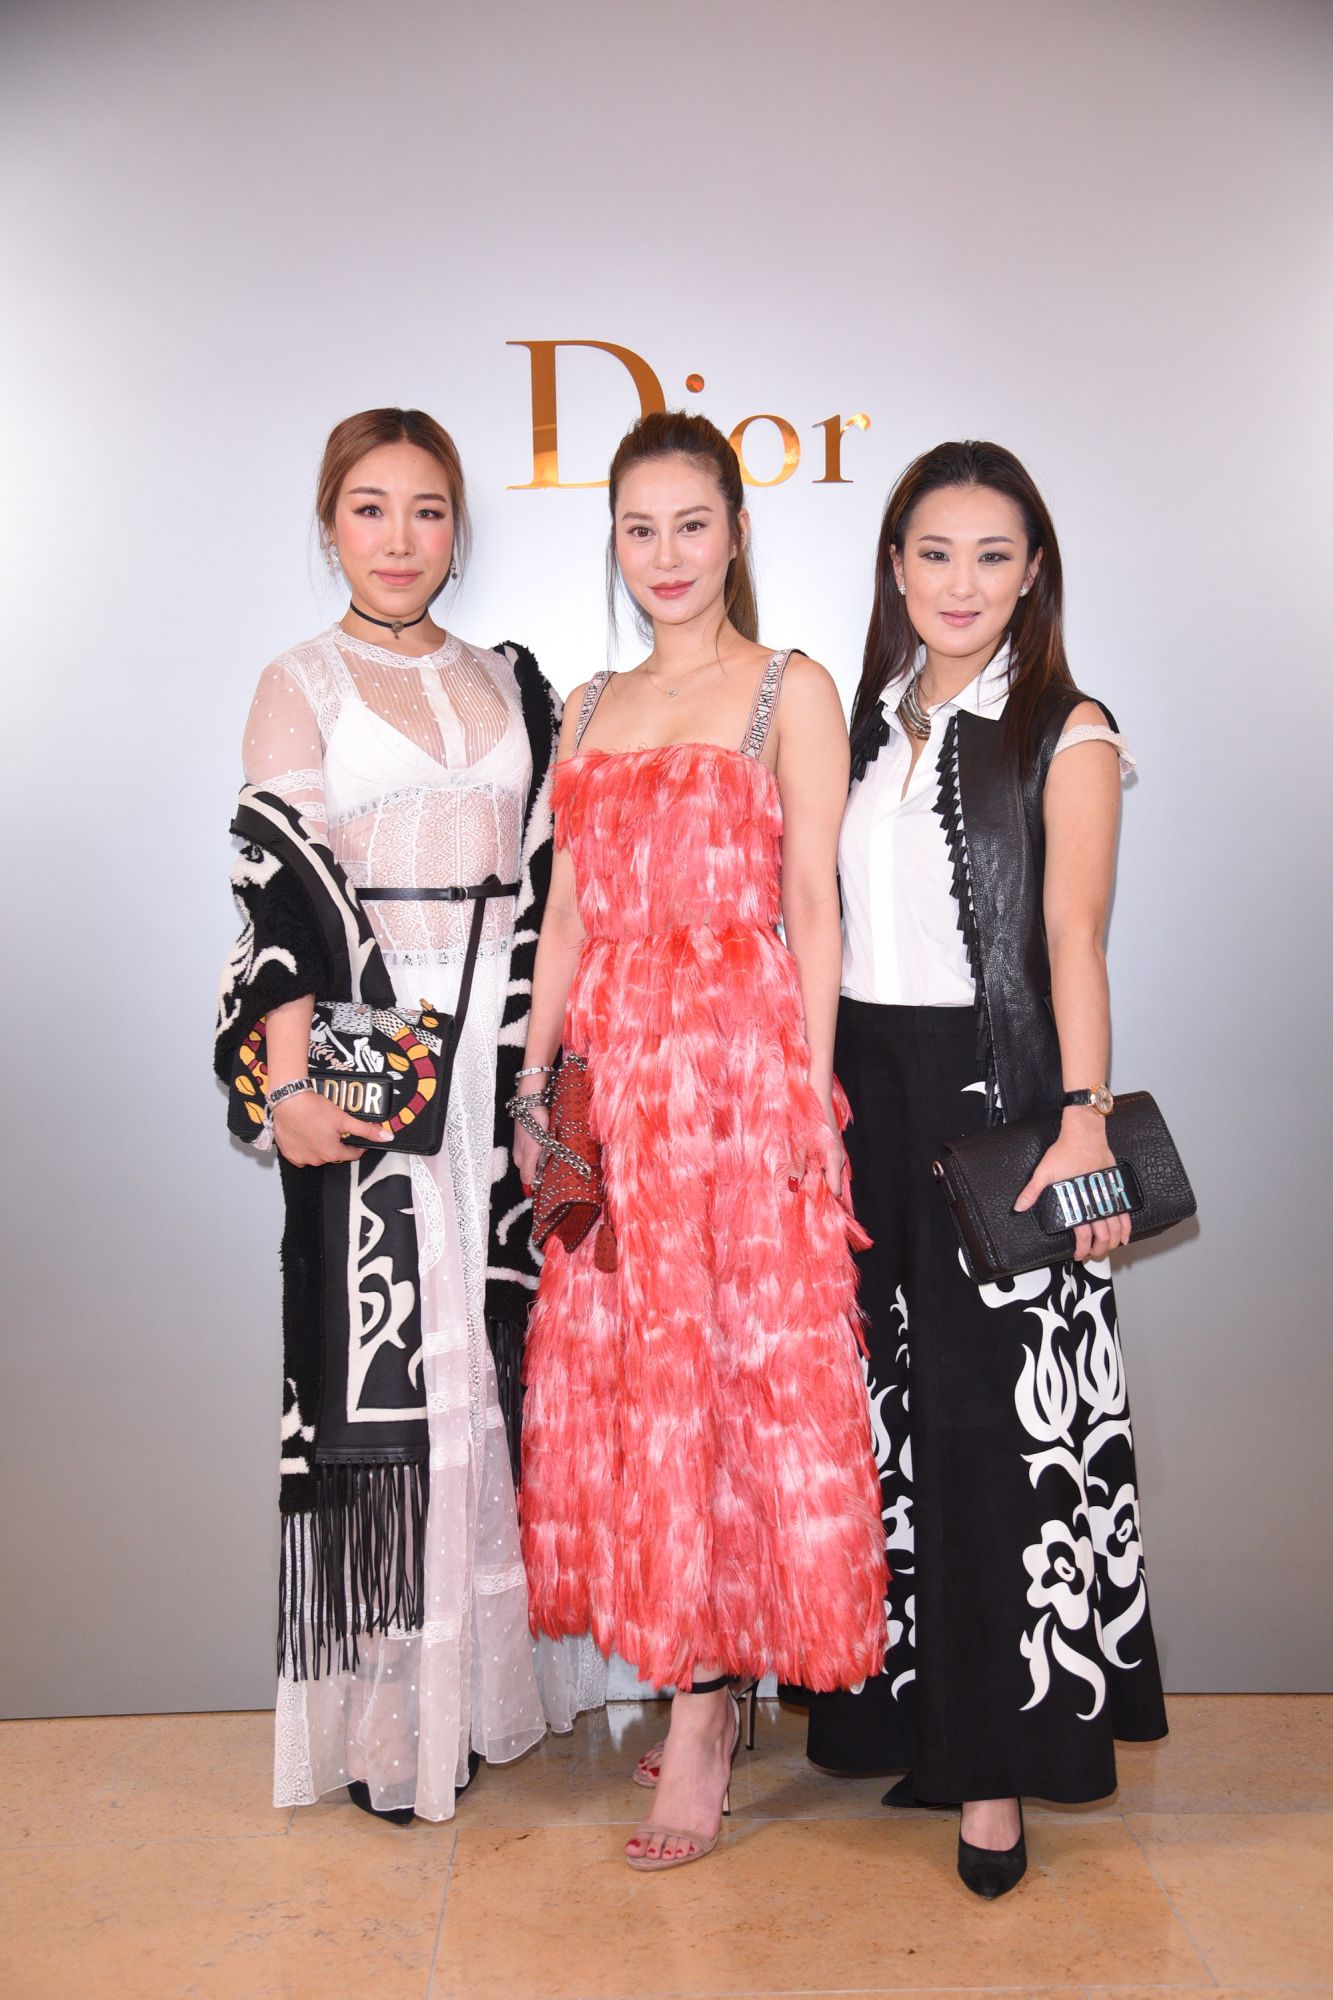 Feiping Chang, Eleanor Lam, Antonia Li